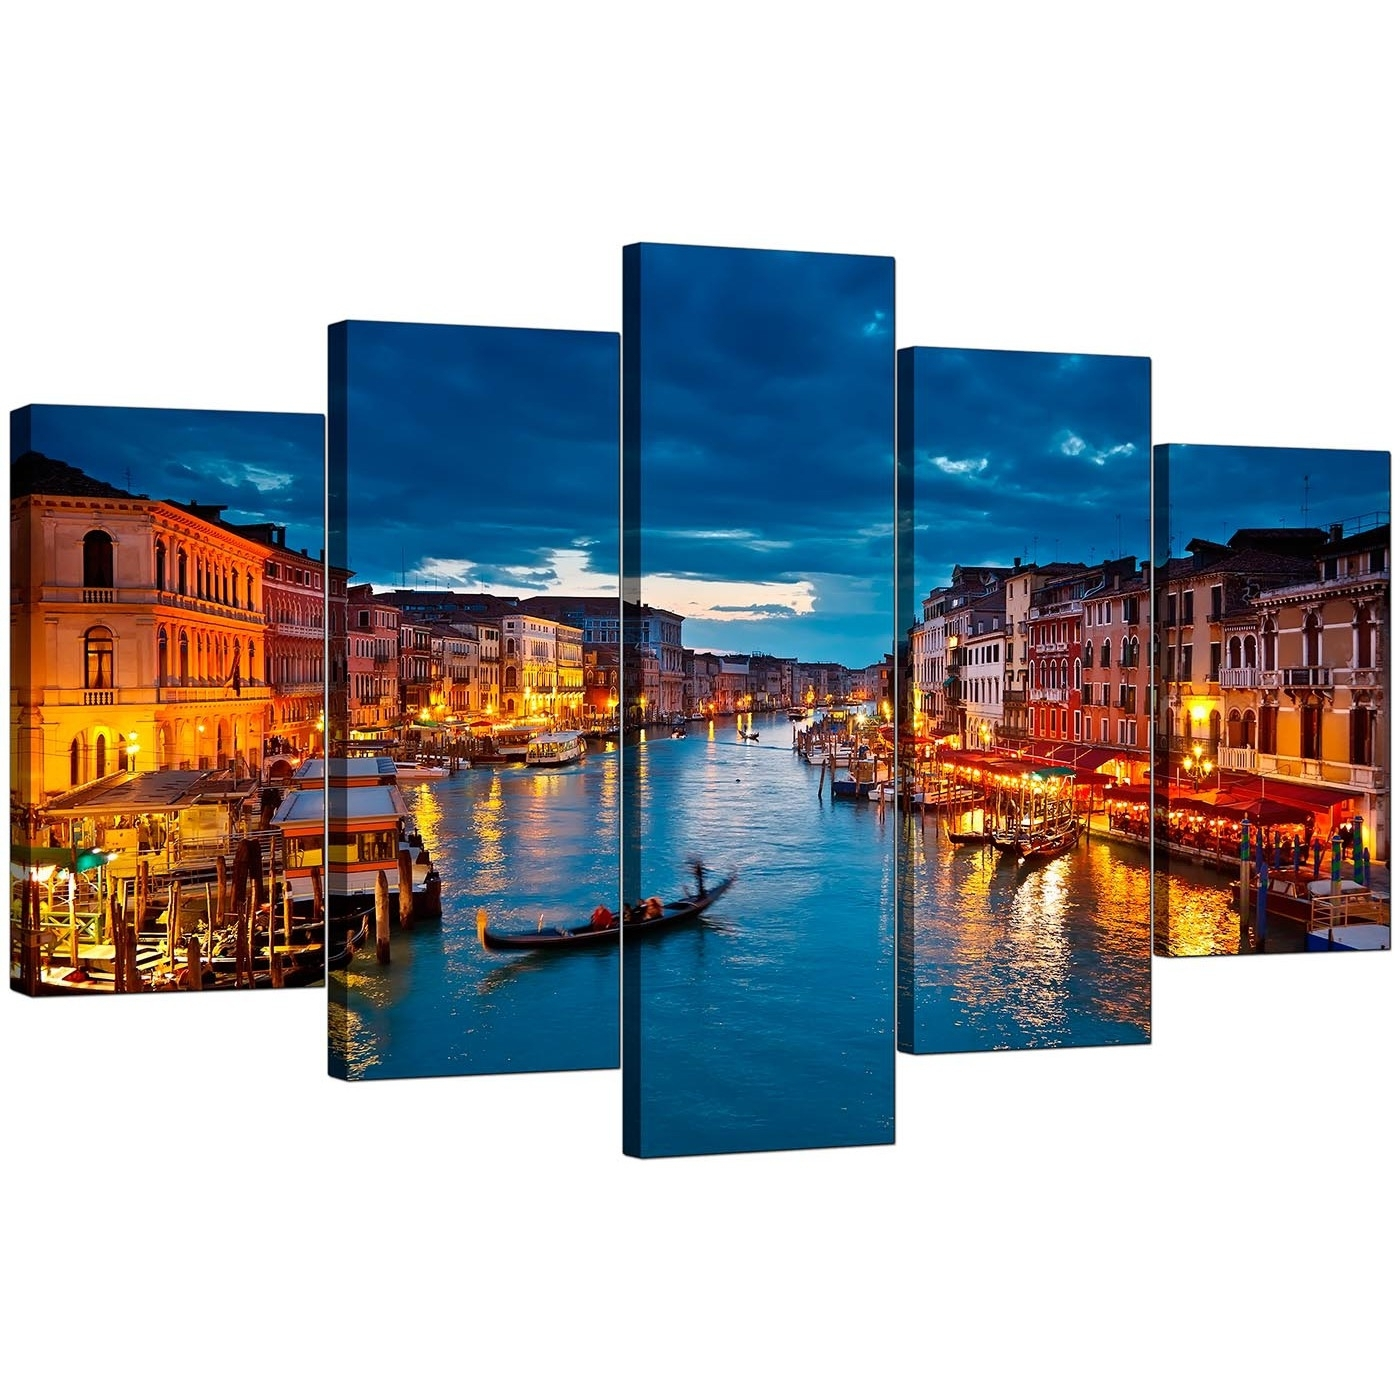 Venice Italy Canvas Prints For Your Living Room – 5 Panel In 2017 Italy Canvas Wall Art (Gallery 2 of 15)